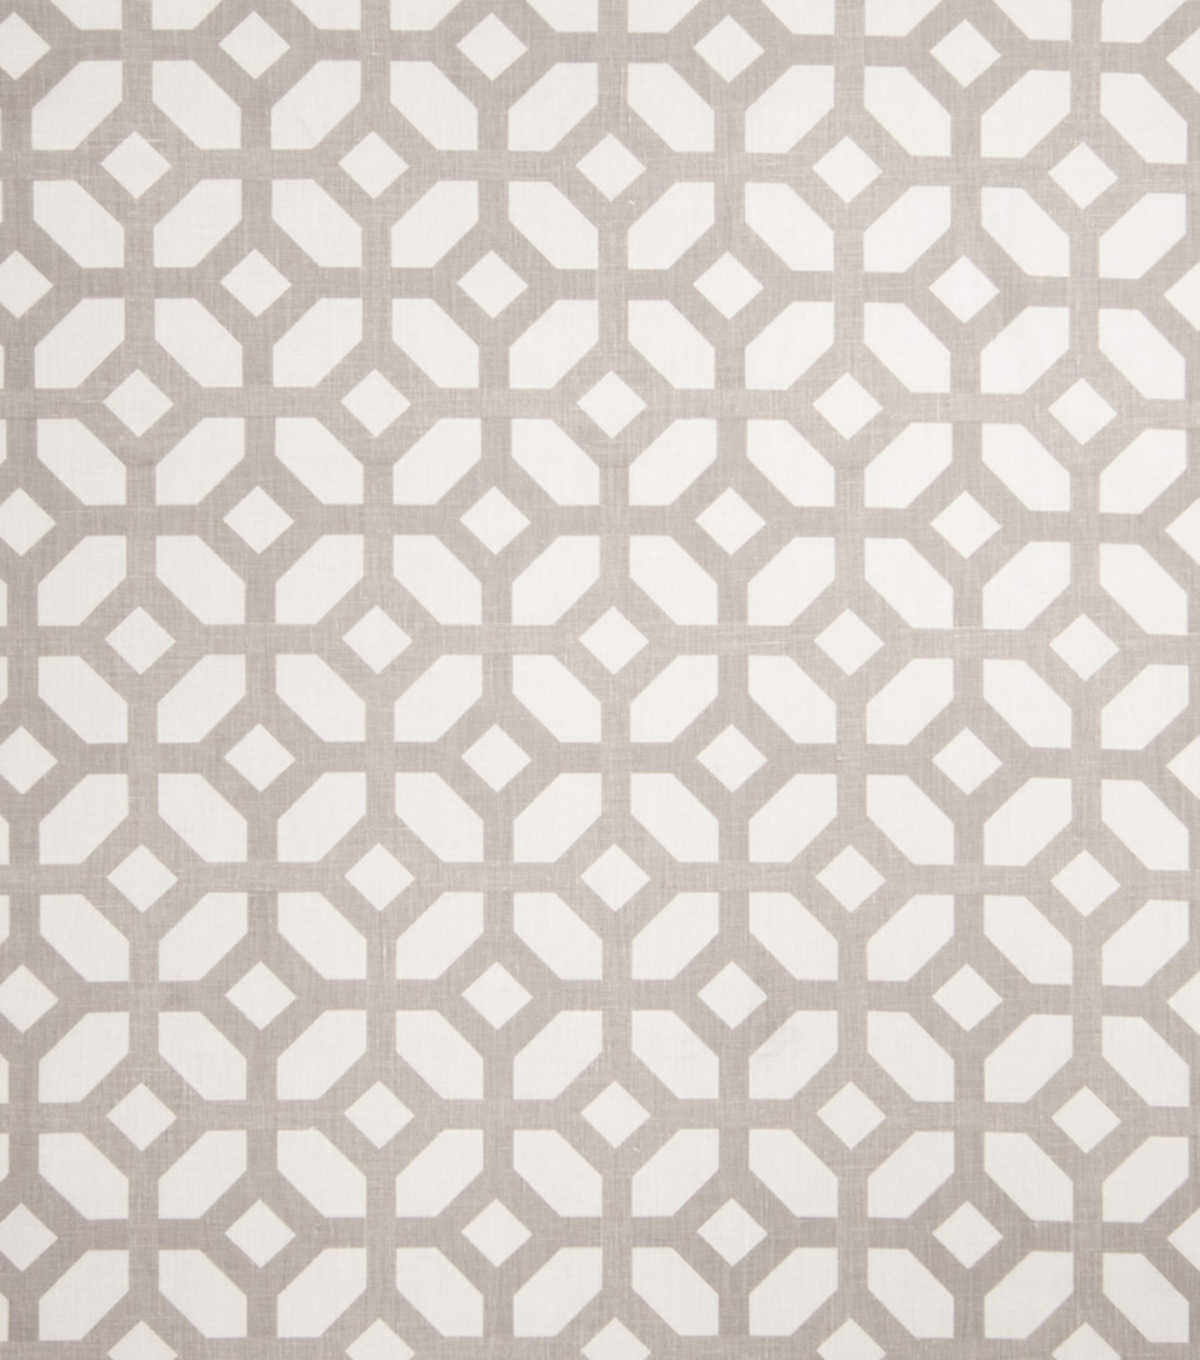 Home Decor 8\u0022x8\u0022 Fabric Swatch-Print Fabric Eaton Square Marmalade Grey